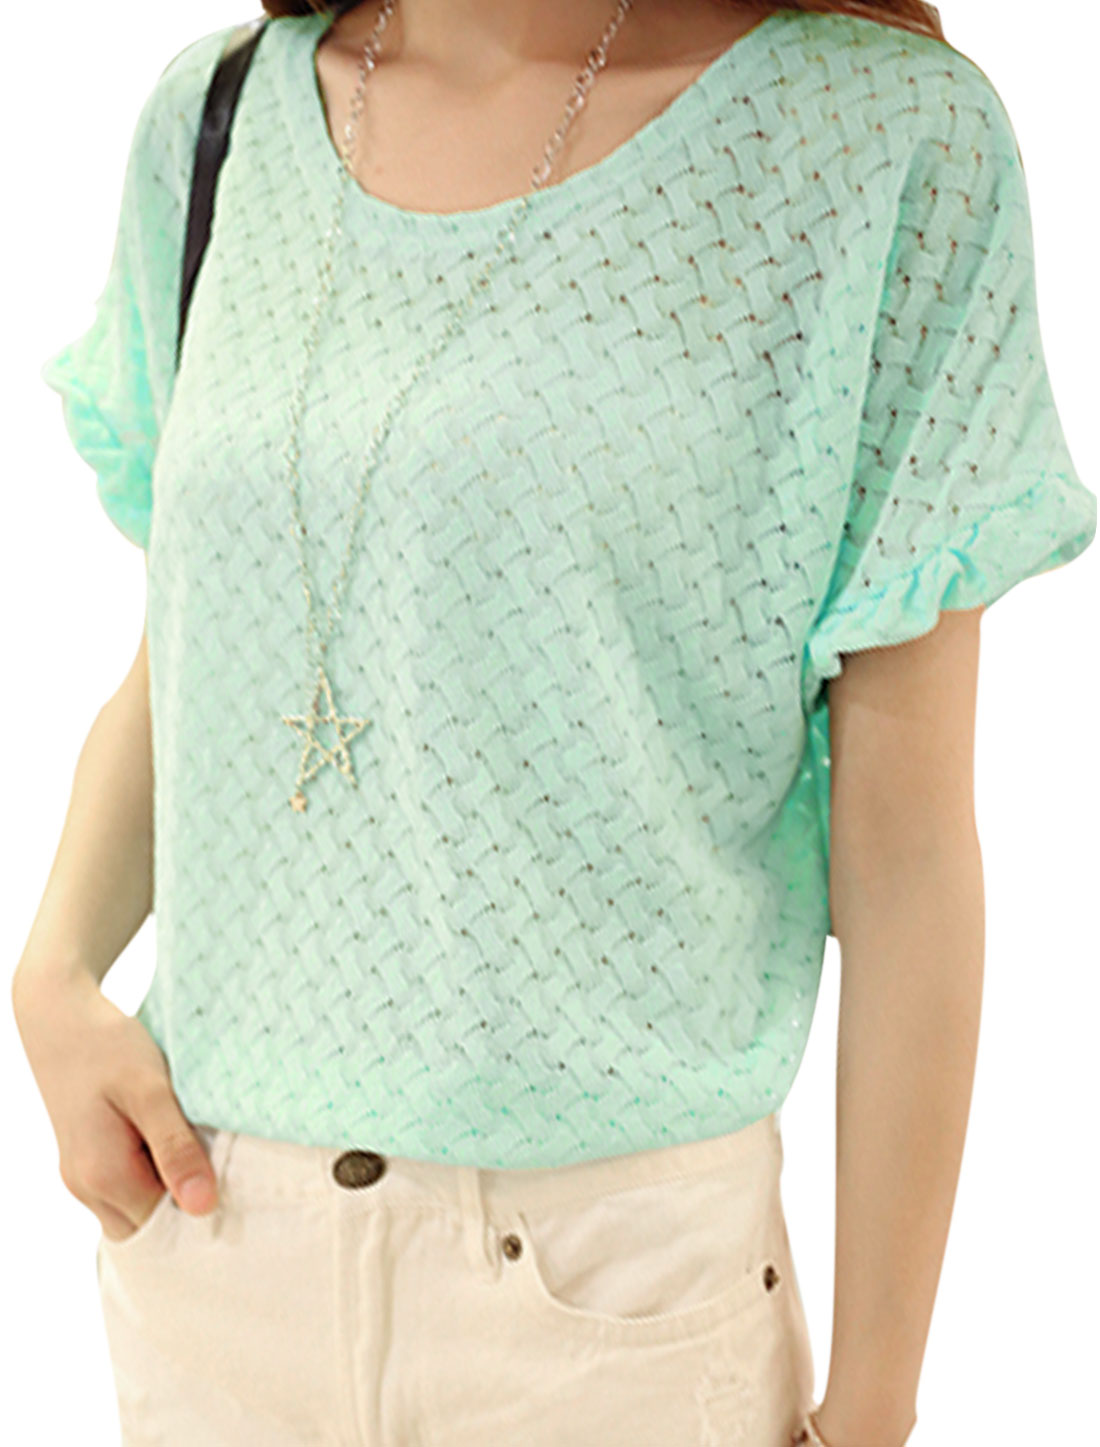 Lady Short Batwing Sleeve See Through Sheer Lace Top Mint XS